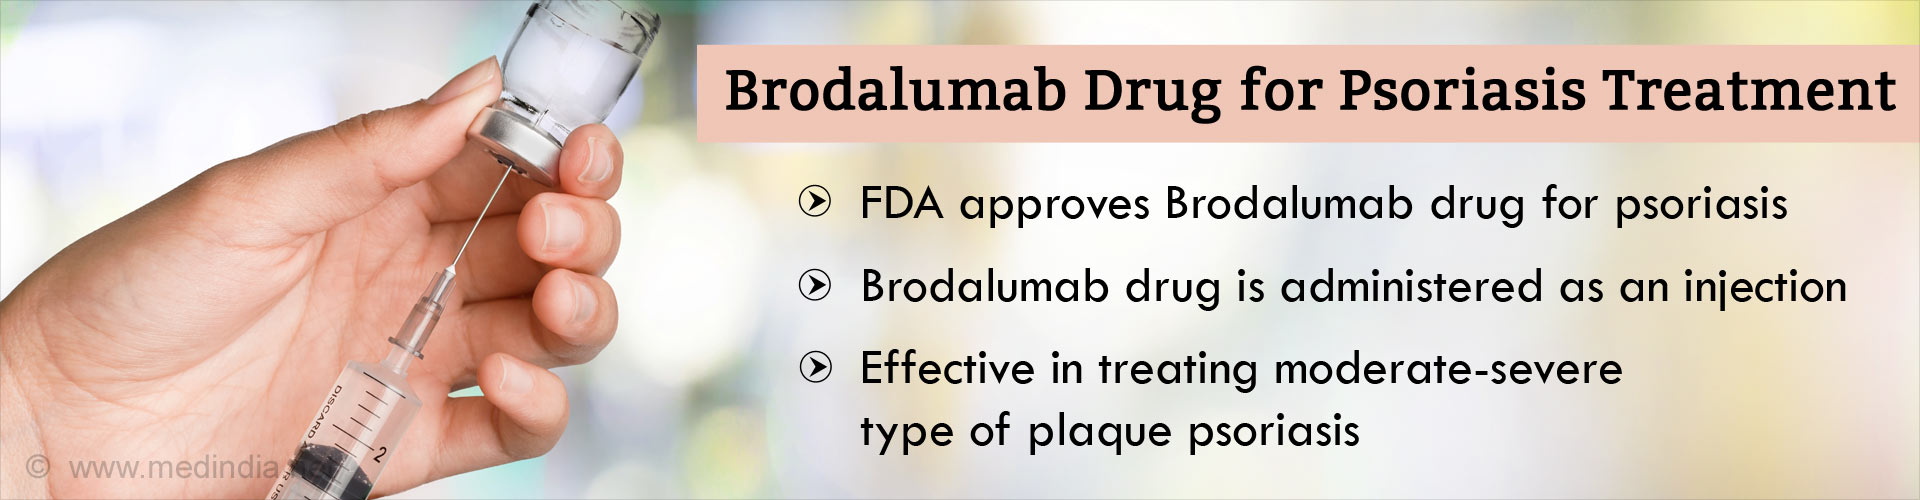 FDA Approves Brodalumab Drug for Psoriasis Treatment